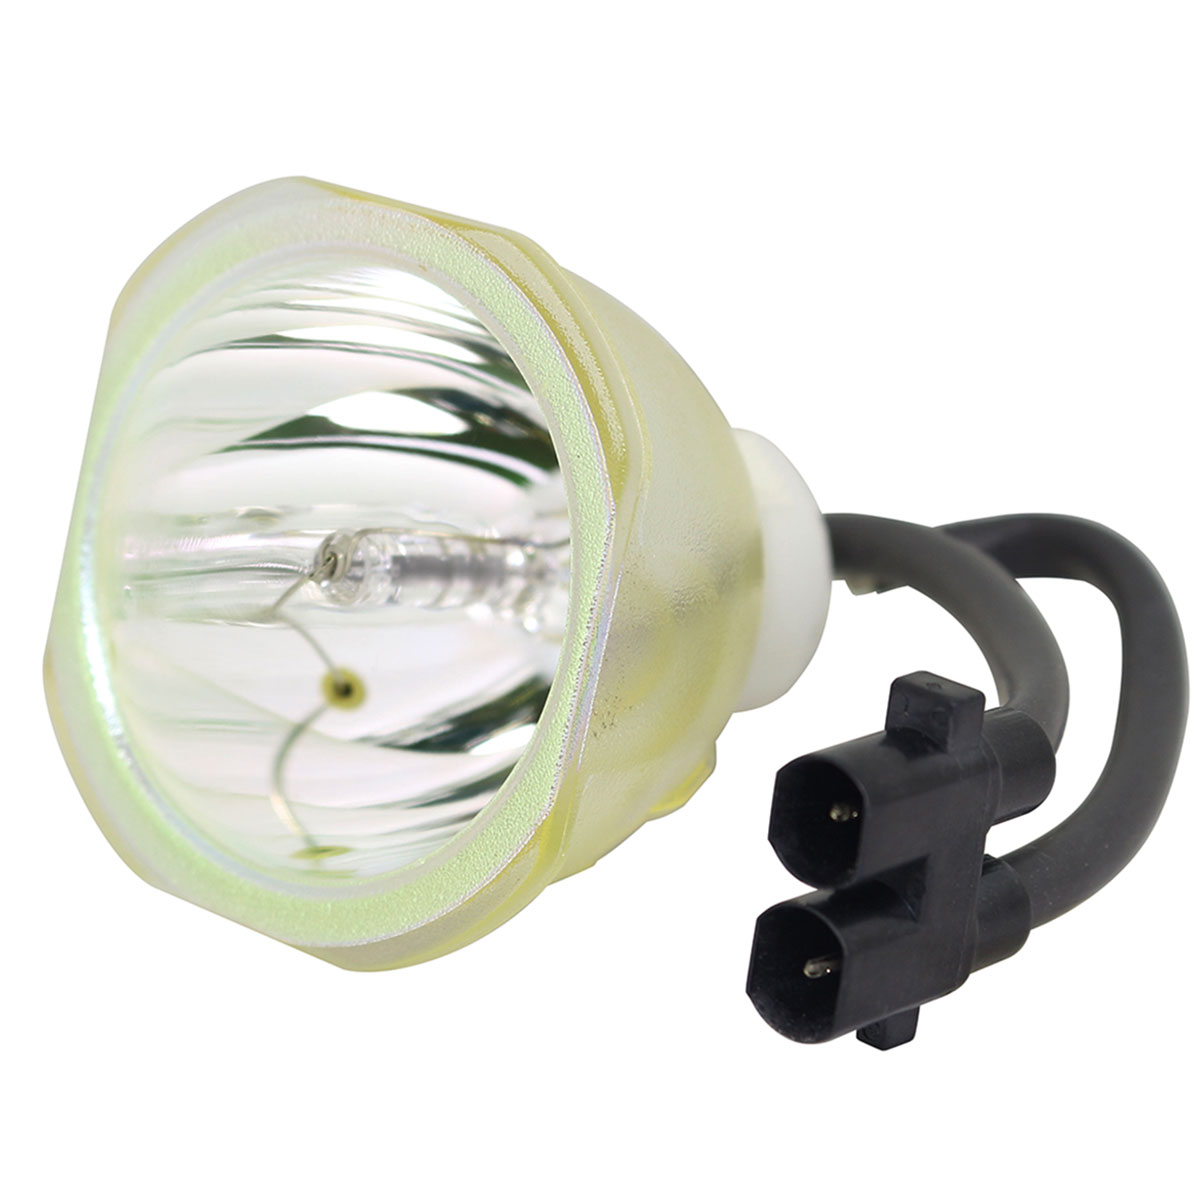 Lutema Economy for PLUS PLUS U5-122 Projector Lamp with Housing - image 5 de 5